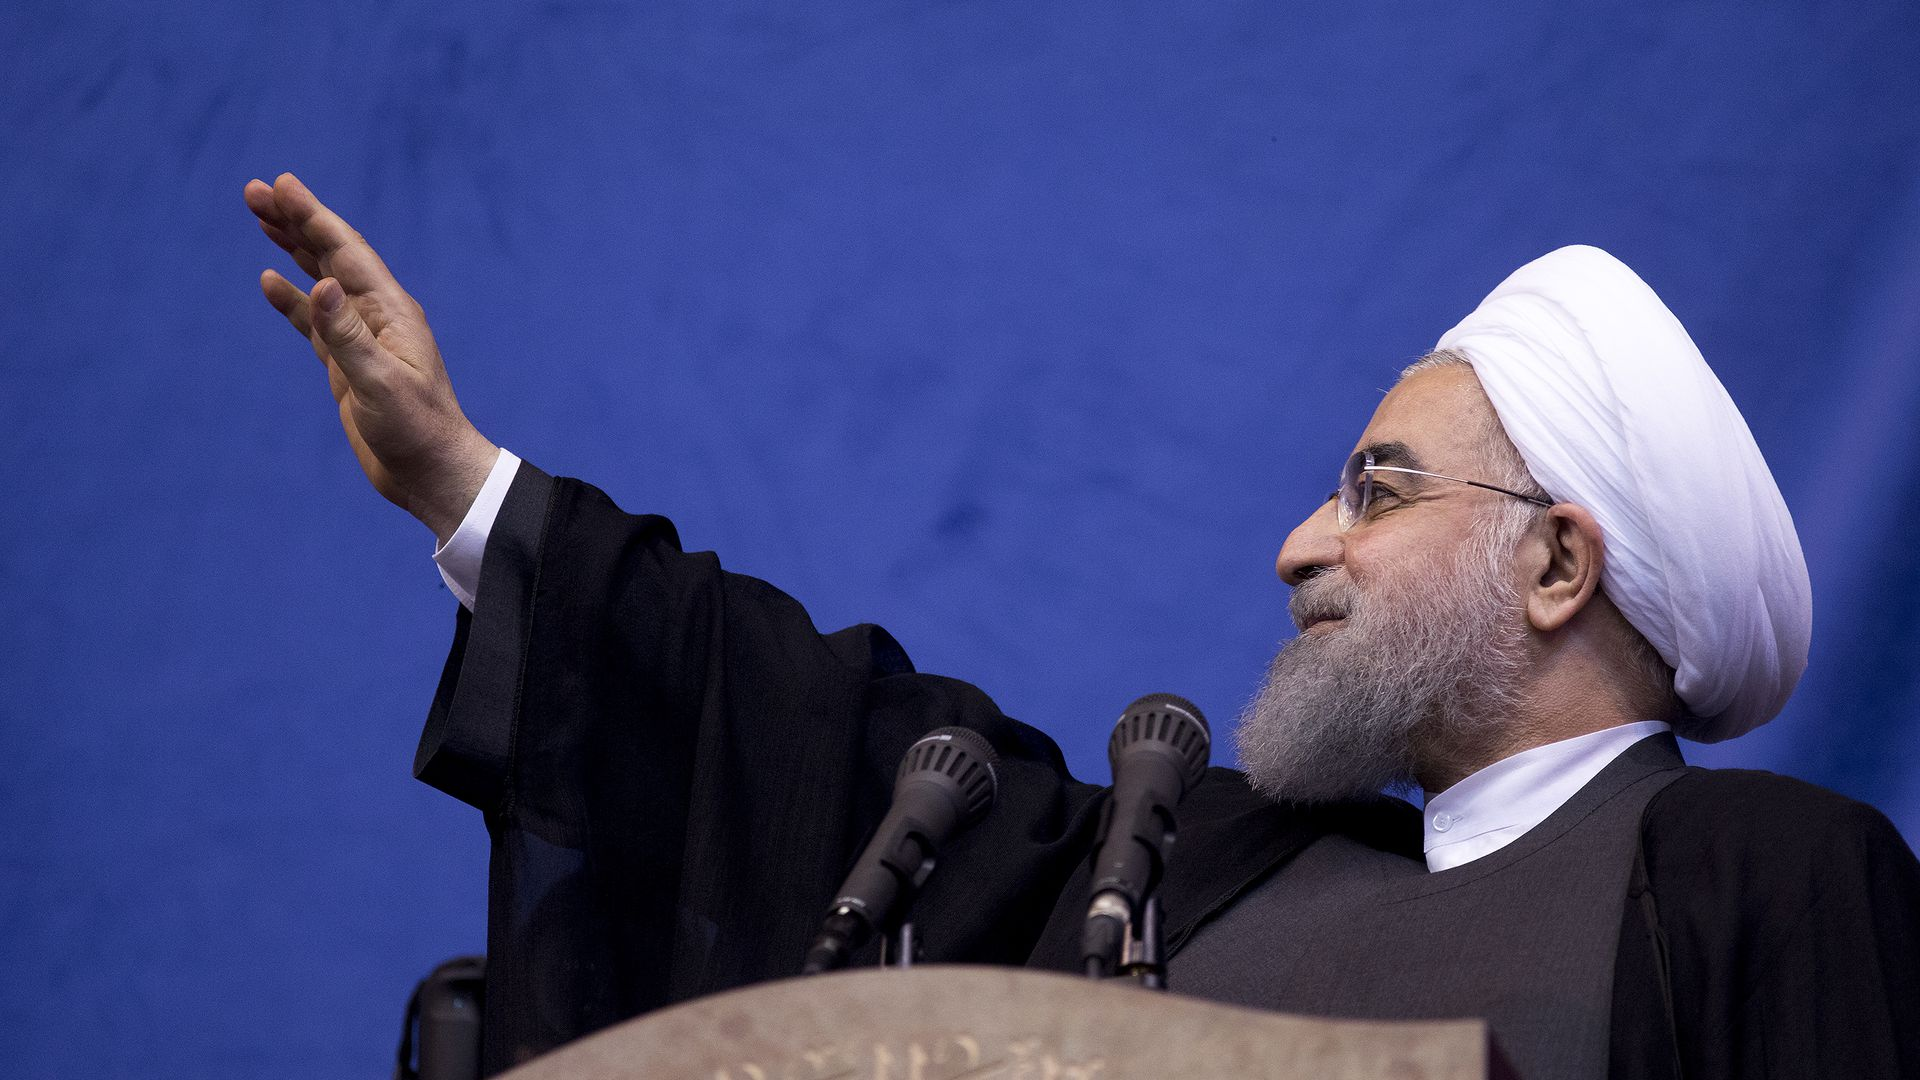 Hassan Rouhani waves his hand up before a blue background.